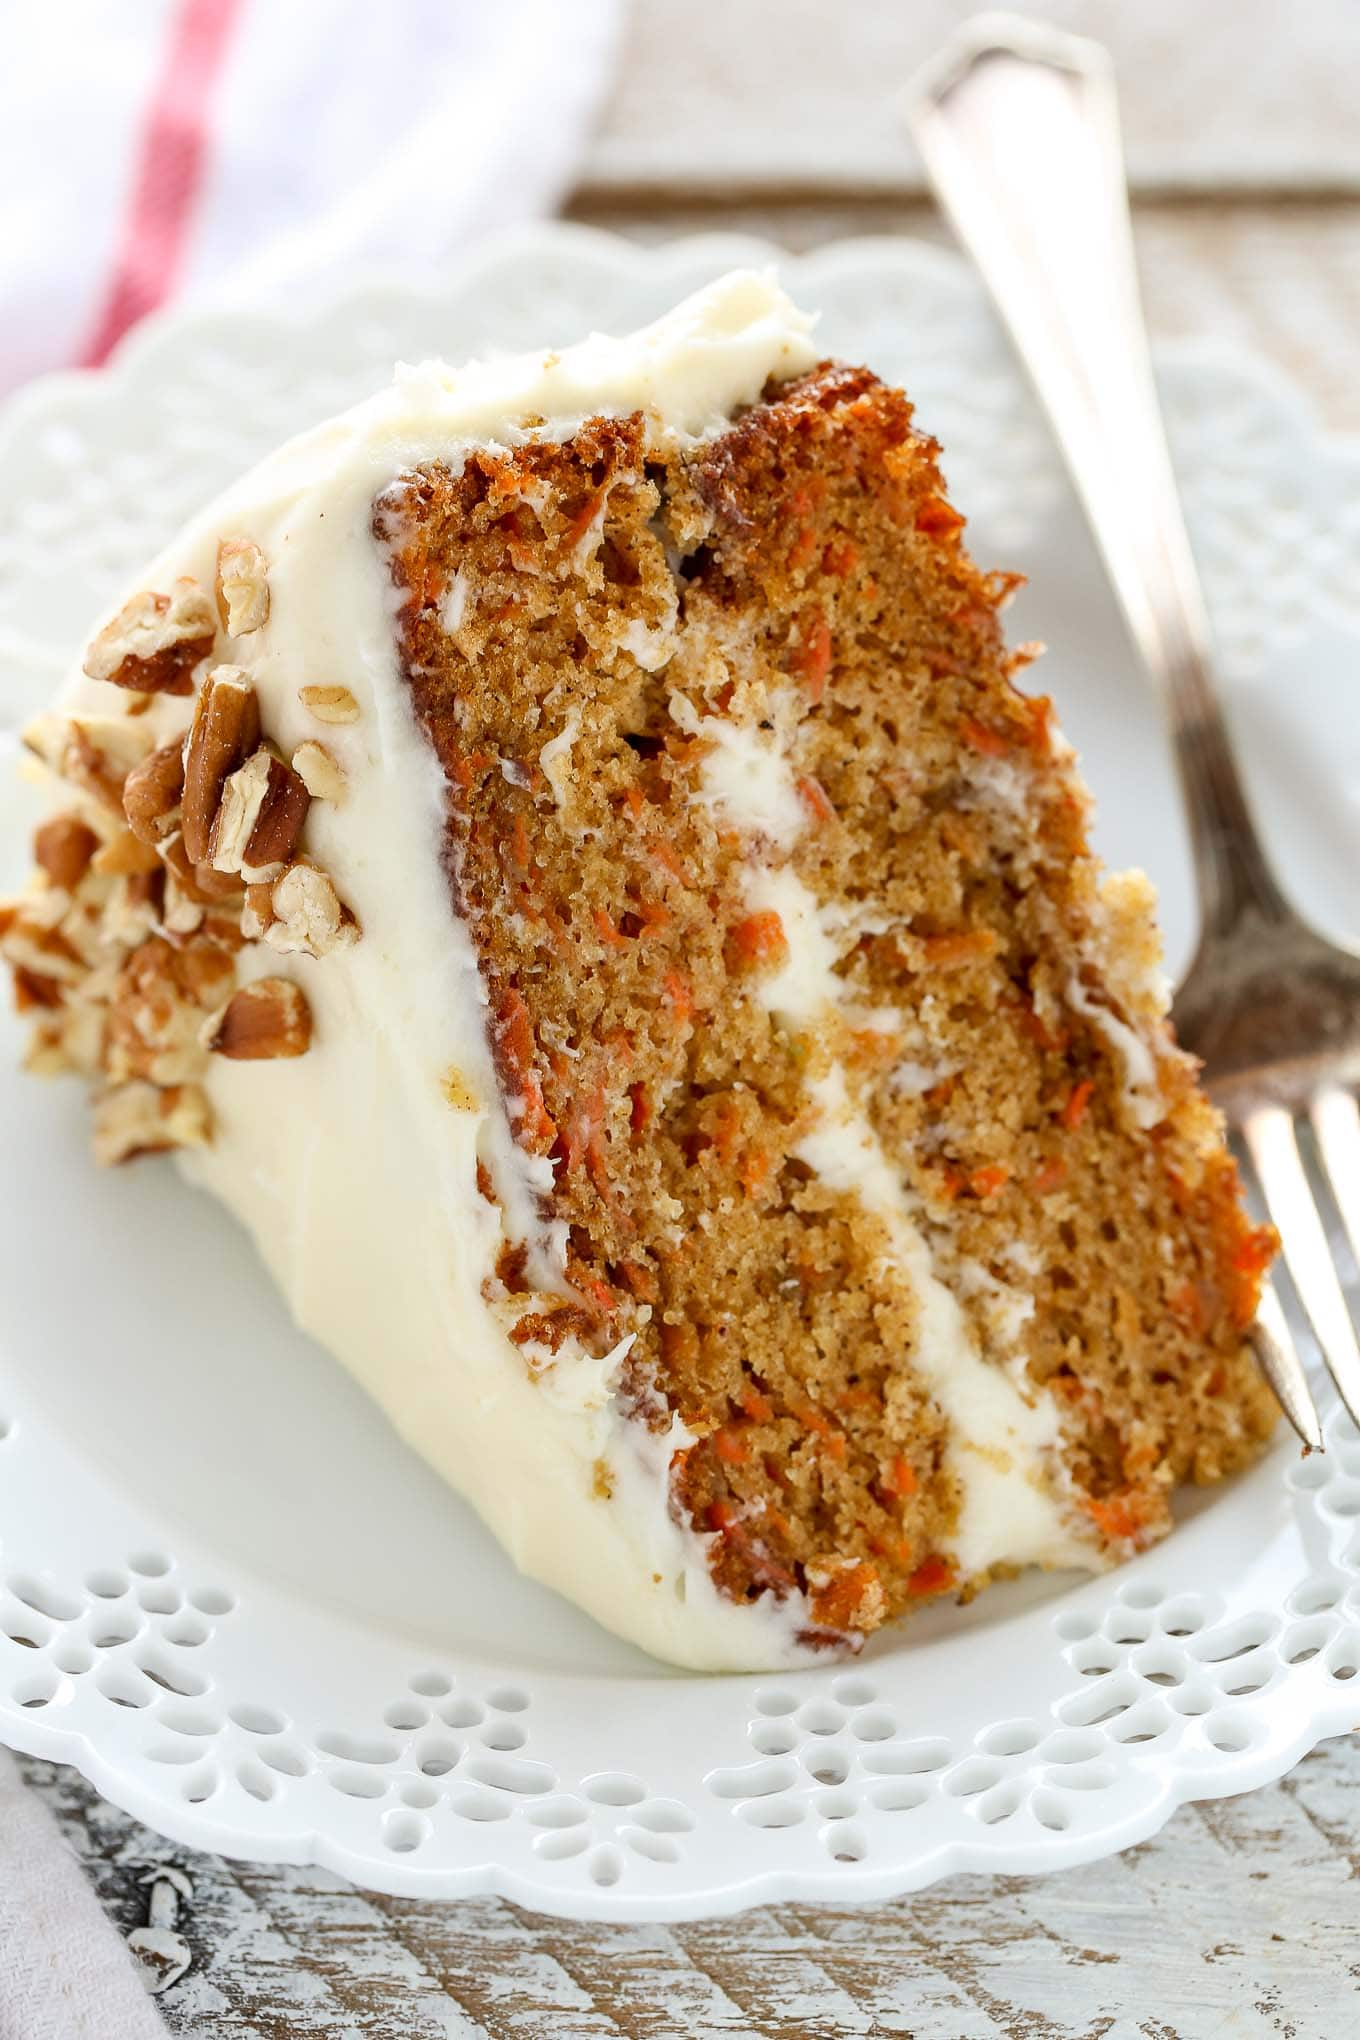 How Much Time To Bake Carrot Cake Cupcakes